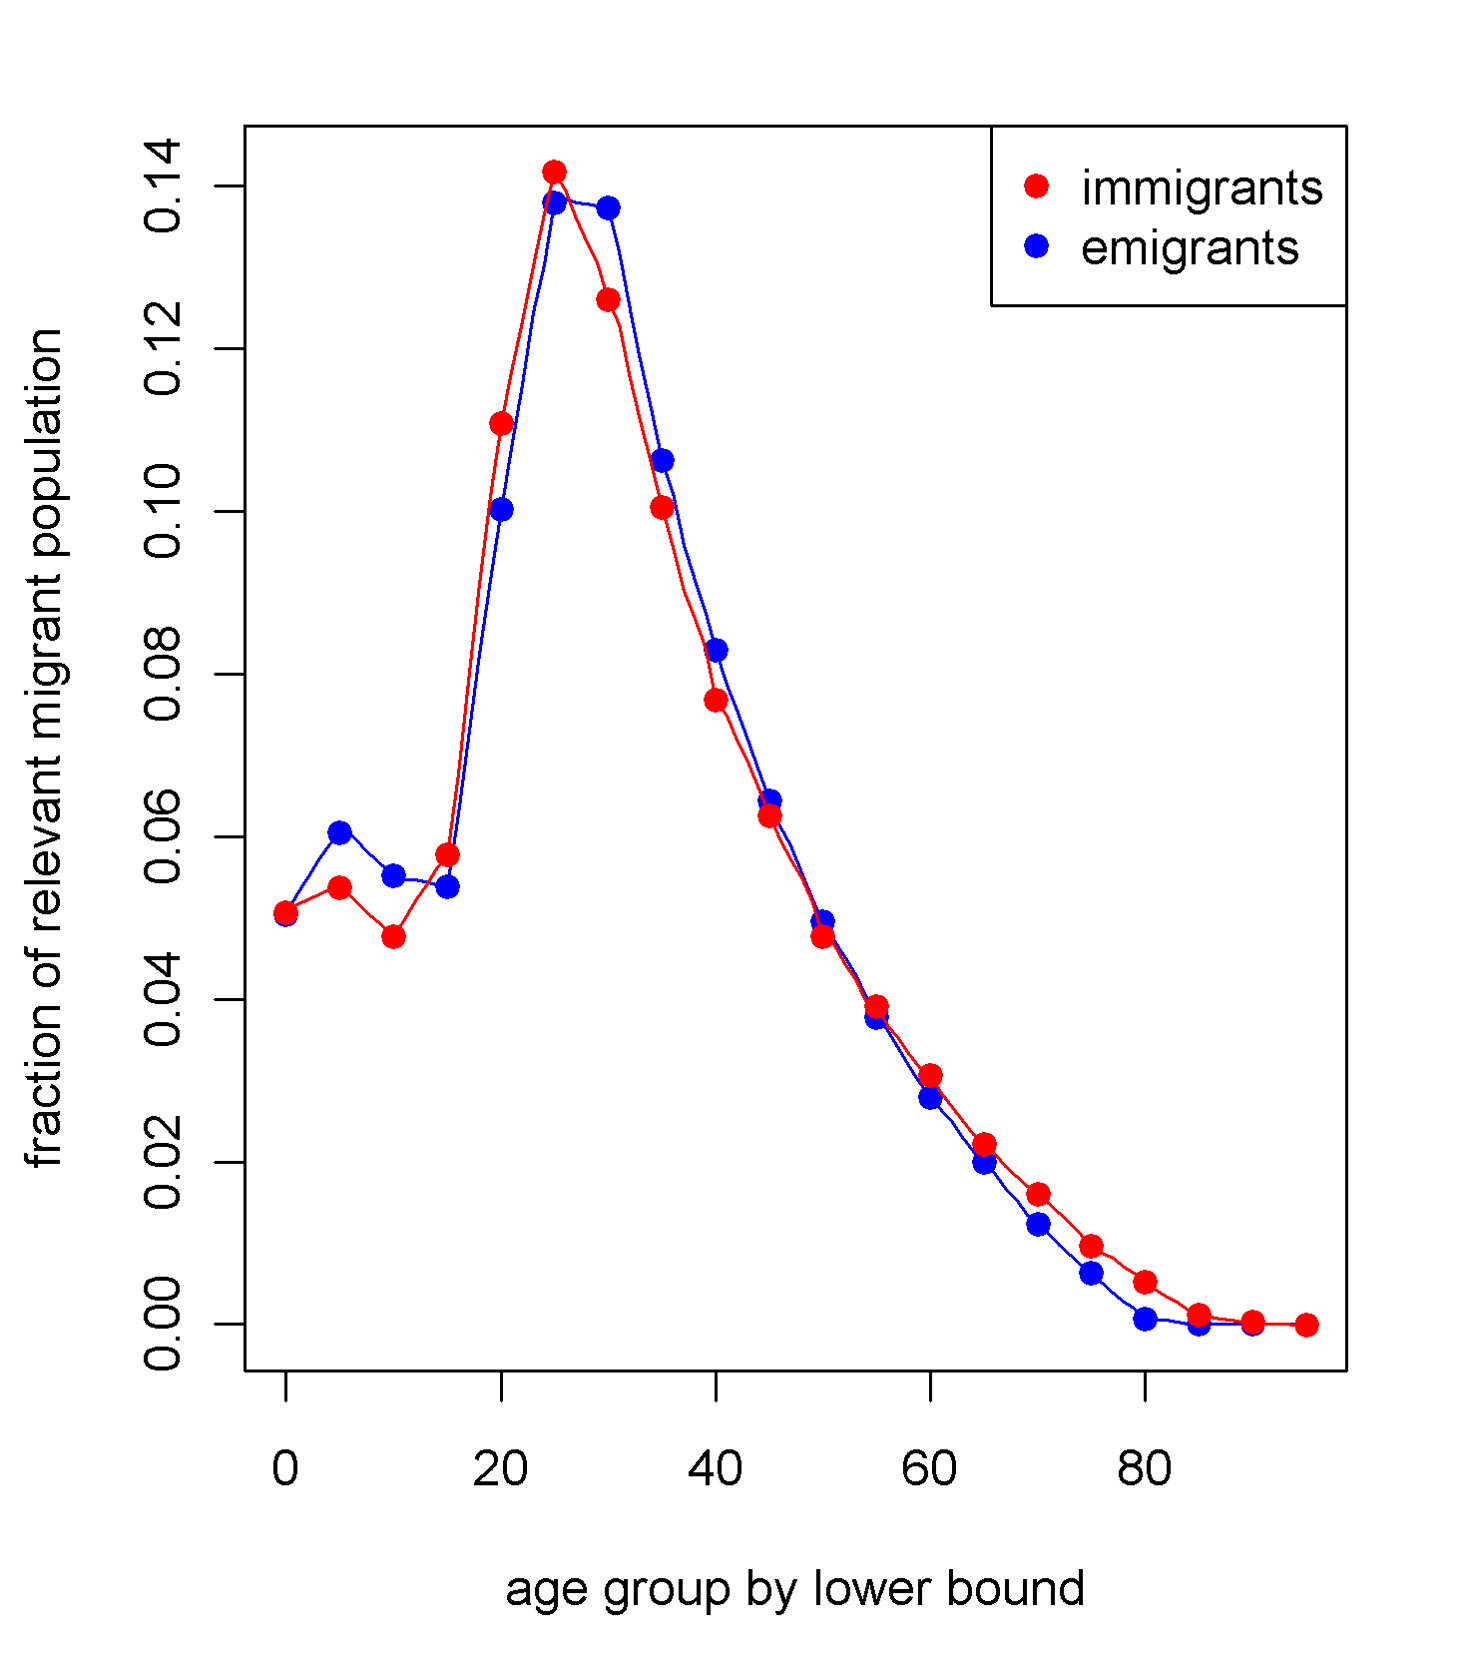 The age pattern of in- and out-migration used to model migration in the simulated populations.